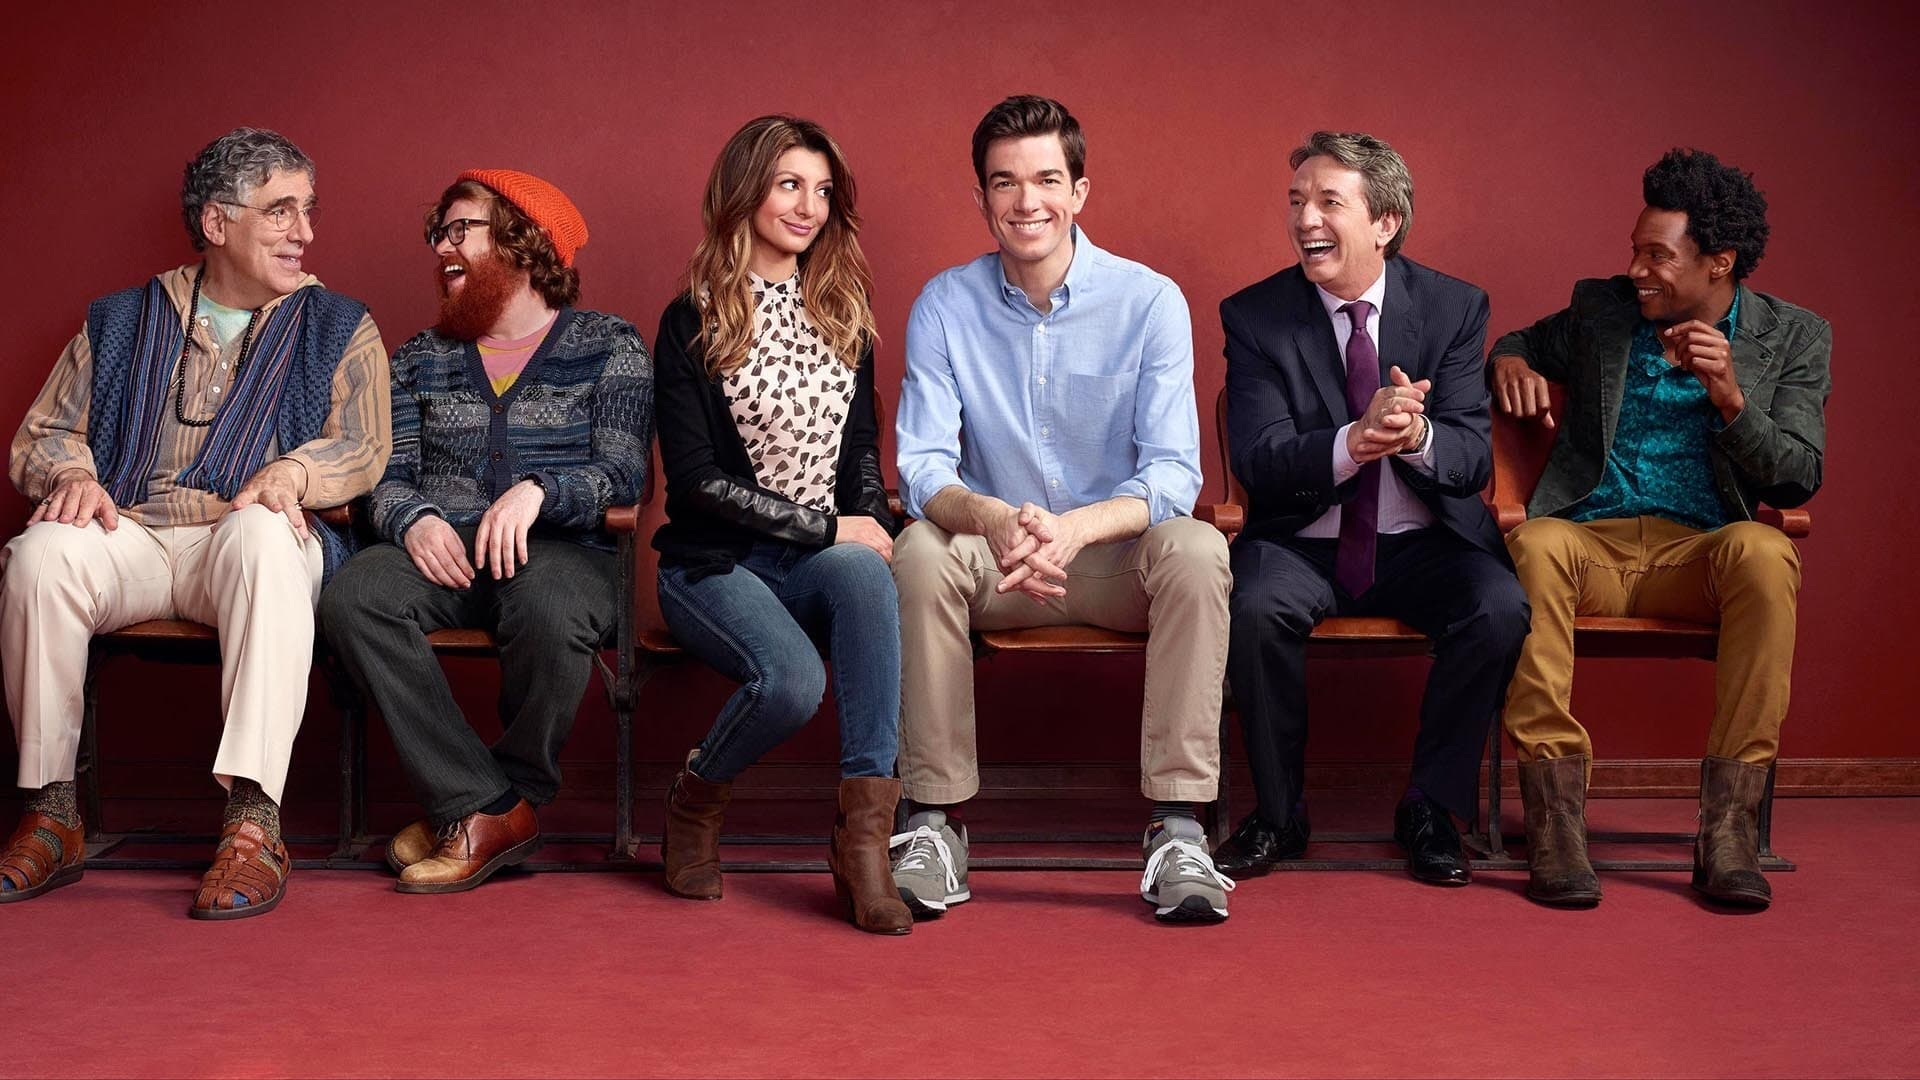 Fox cancelt Mulaney, Weird Loners en American Idol